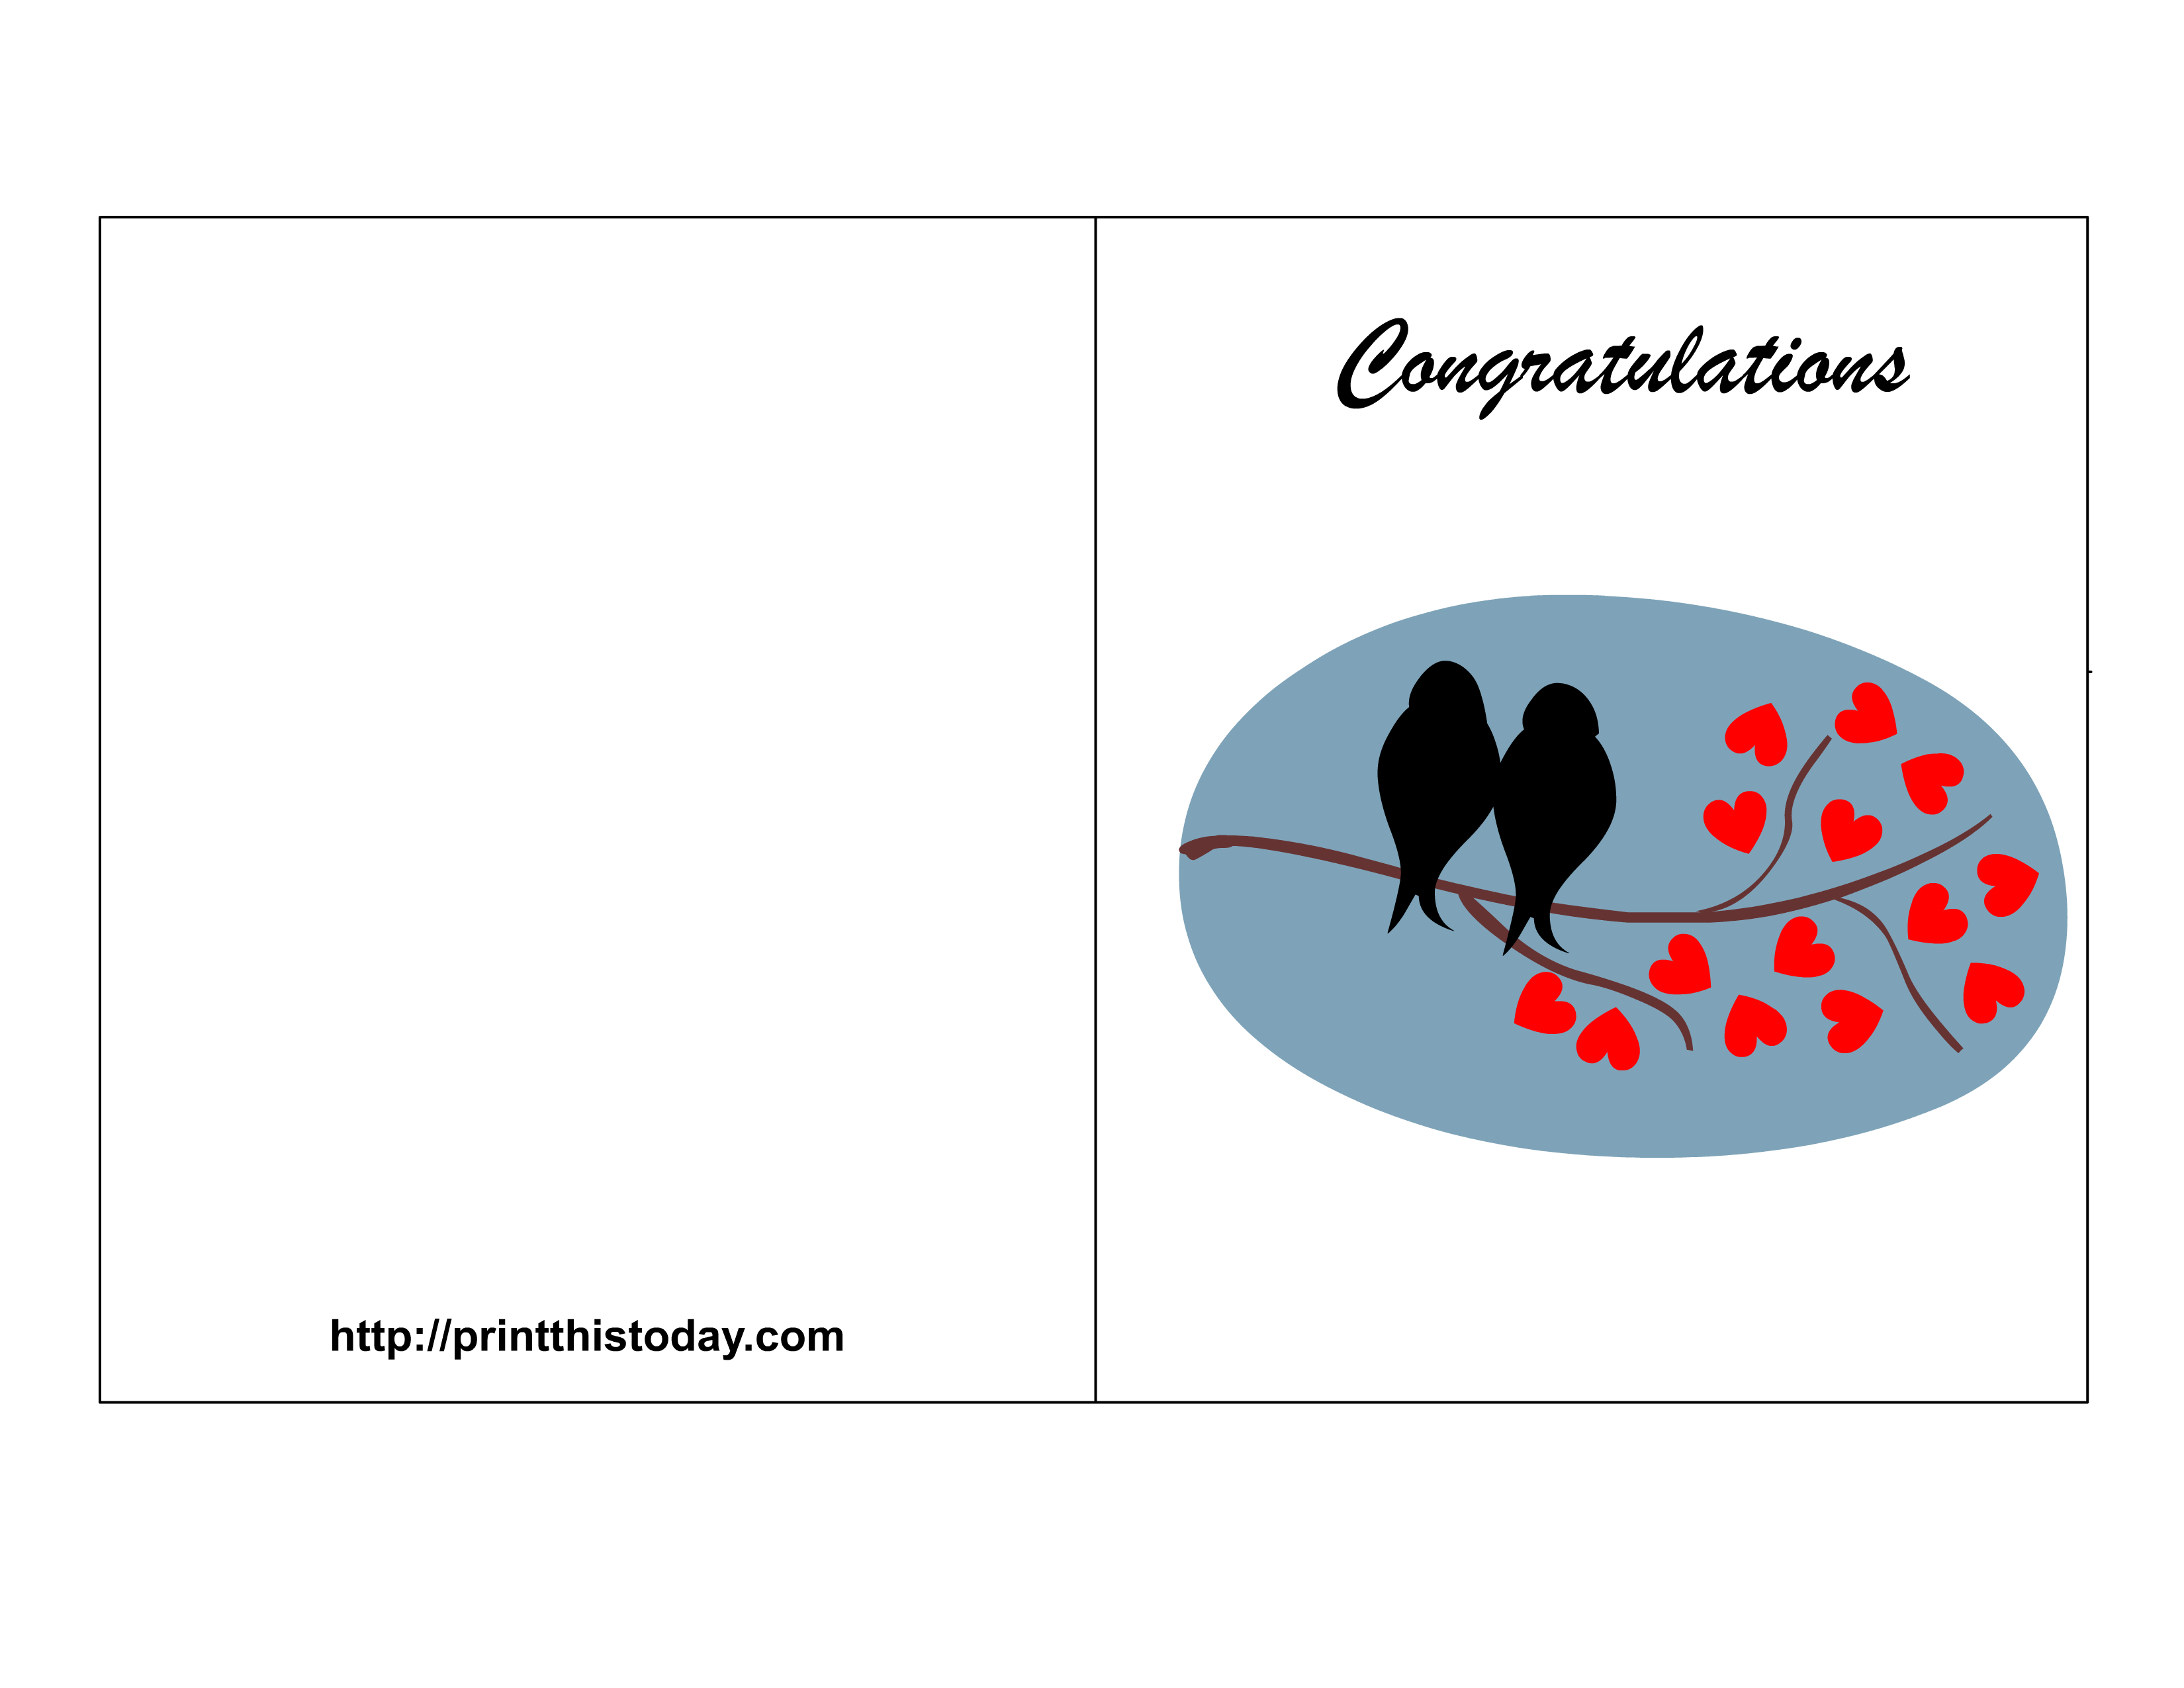 Free printable baby congratulation cards free printable wedding free printable baby congratulation cards free printable wedding congratulations cards print this today m4hsunfo